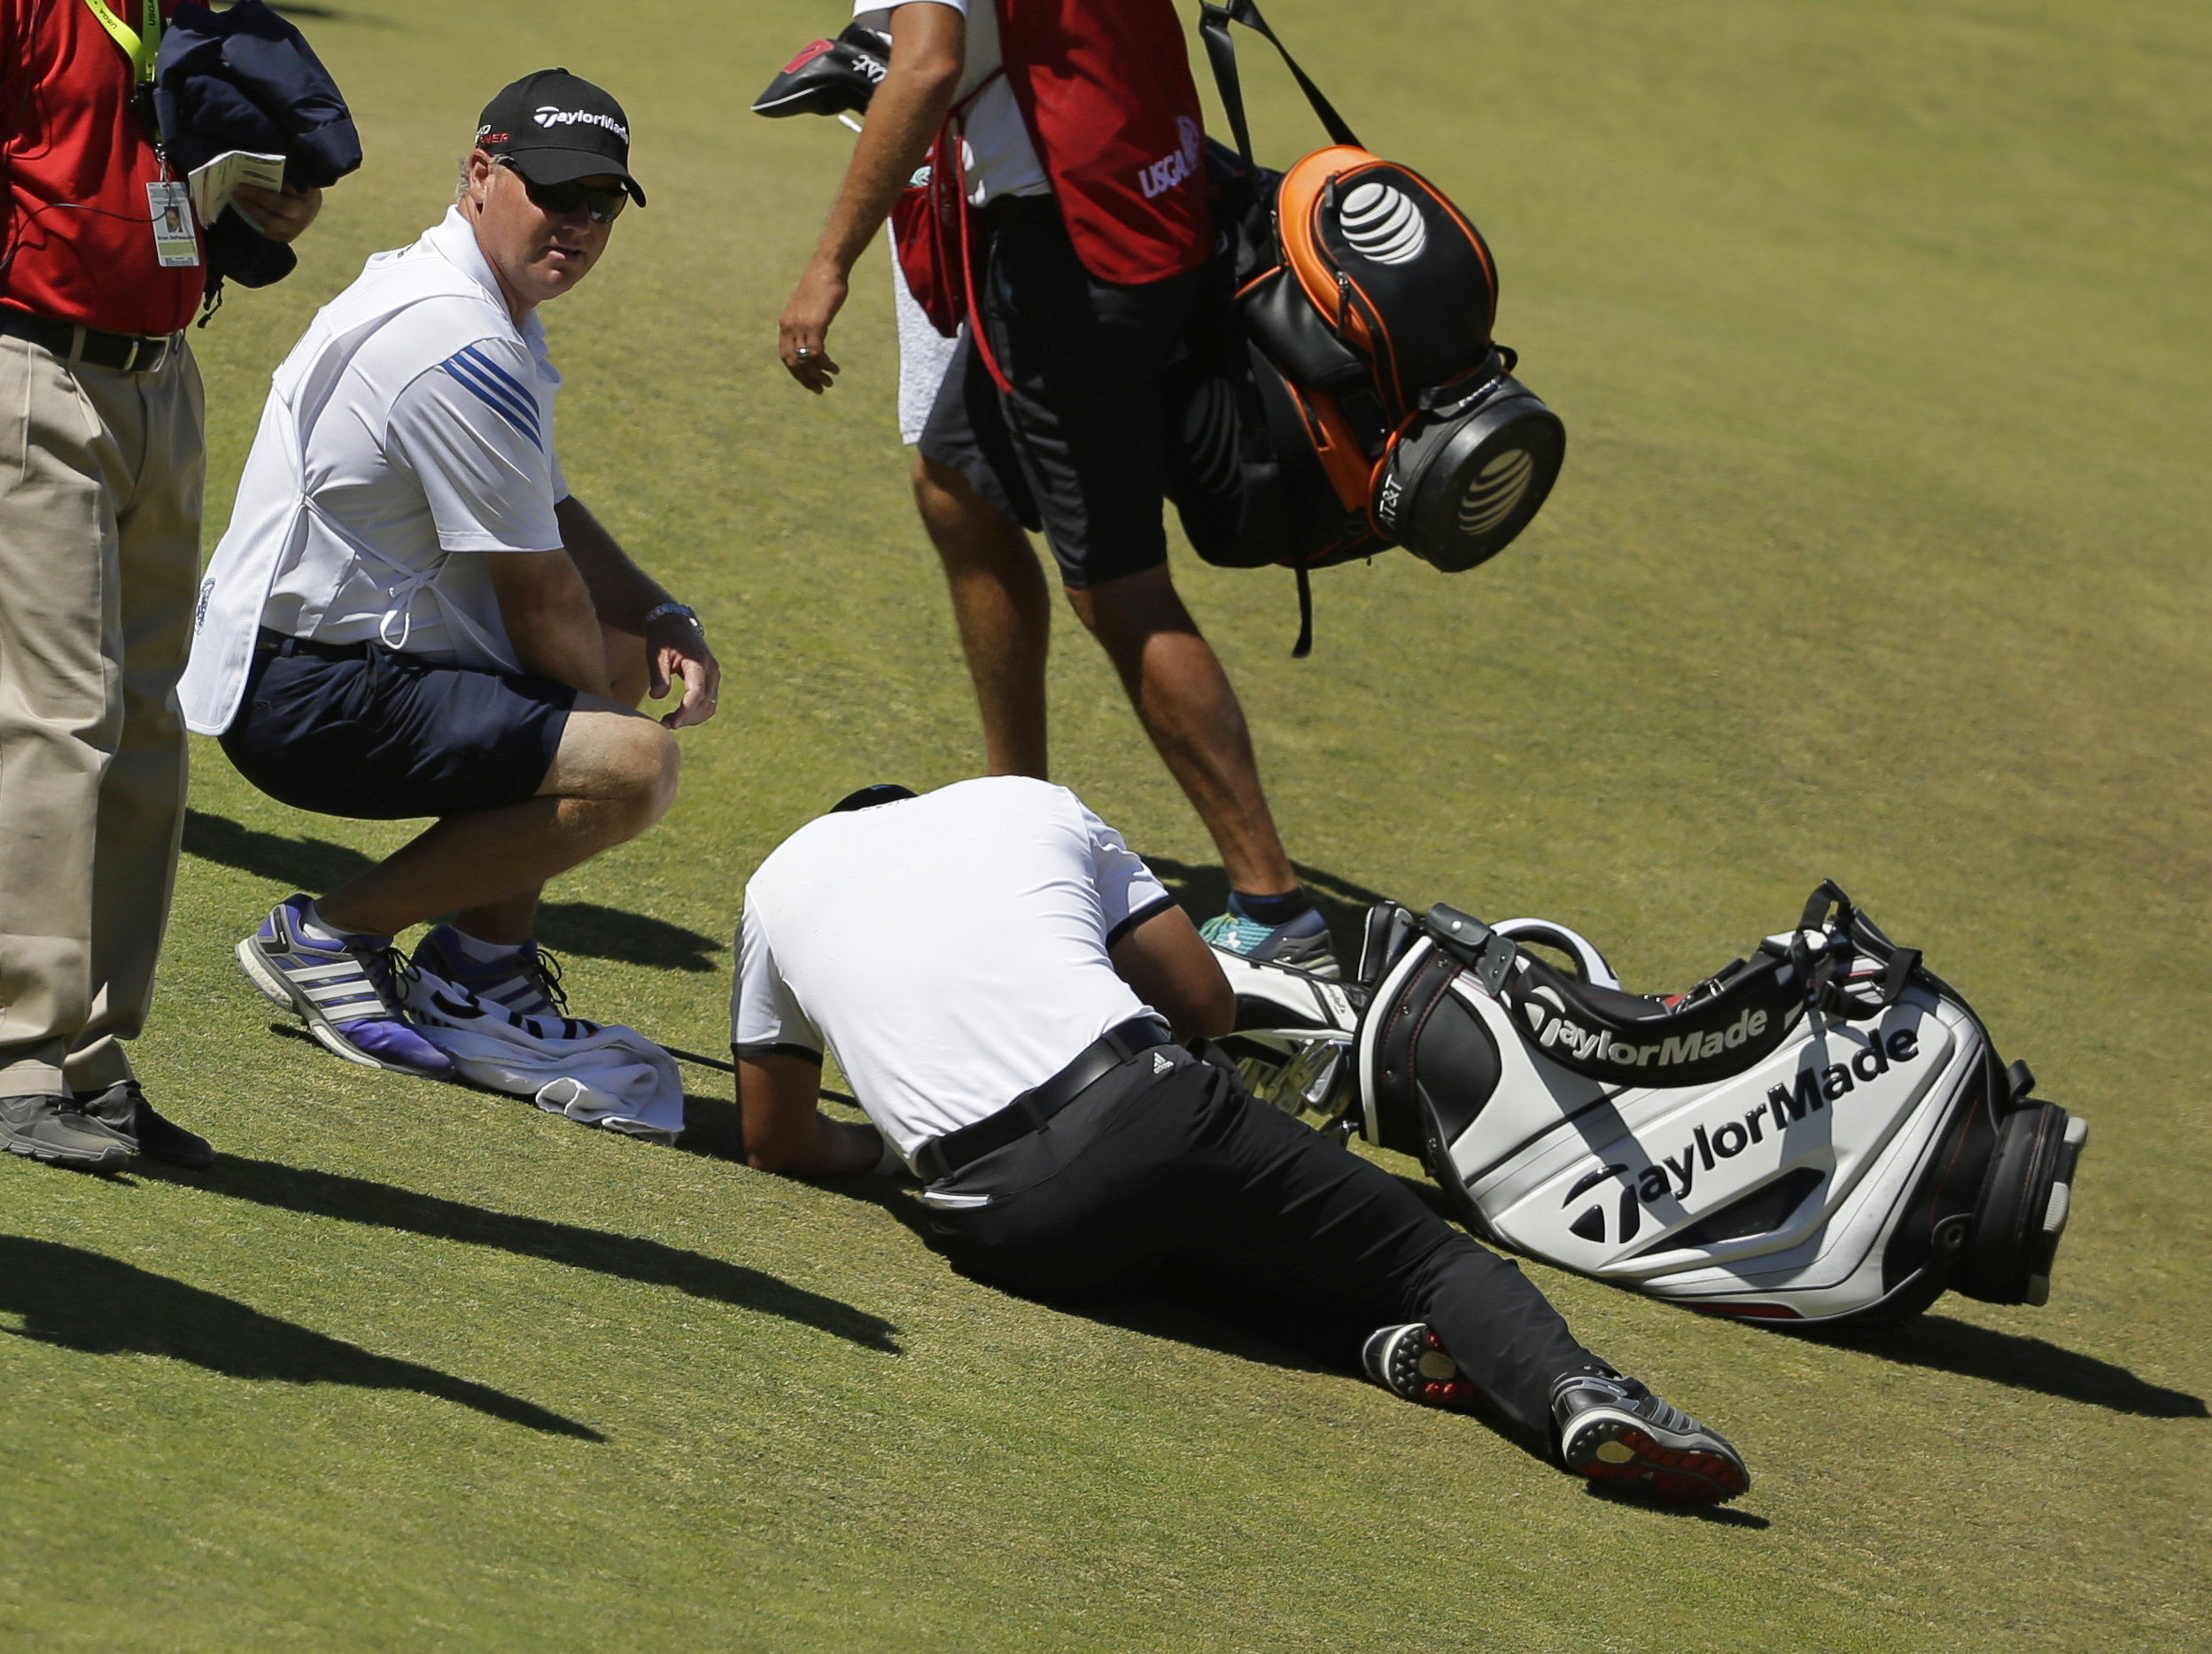 Jason Day, of Australia, lies in the fairway after falling down as his caddie Colin Swatton crouches beside him on the ninth hole during the second round of the U.S. Open golf tournament at Chambers Bay on Friday, June 19, 2015 in University Place, Wash.